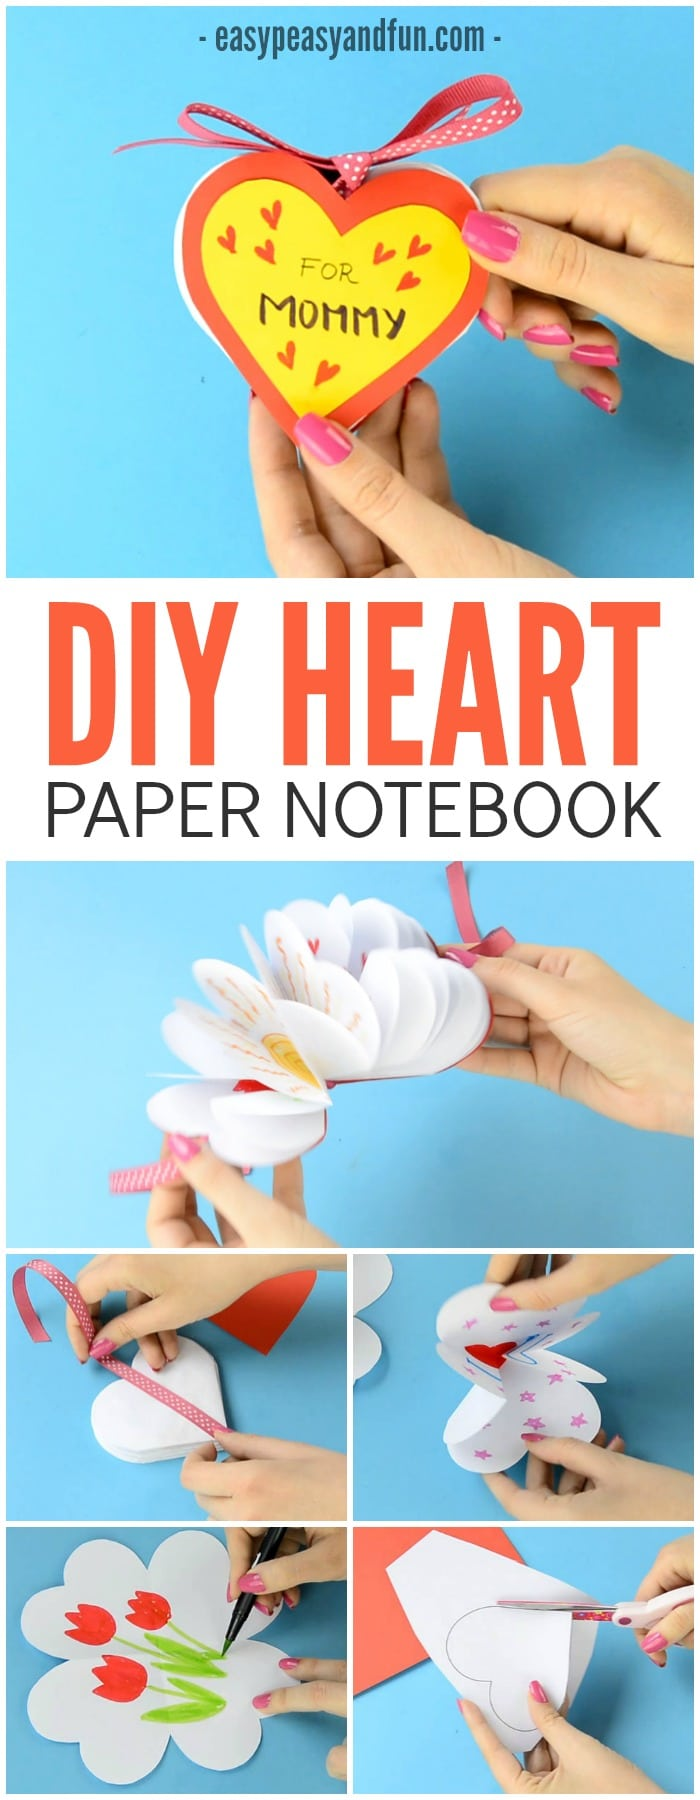 Lovely DIY Heart Notebook Craft for Kids to Make